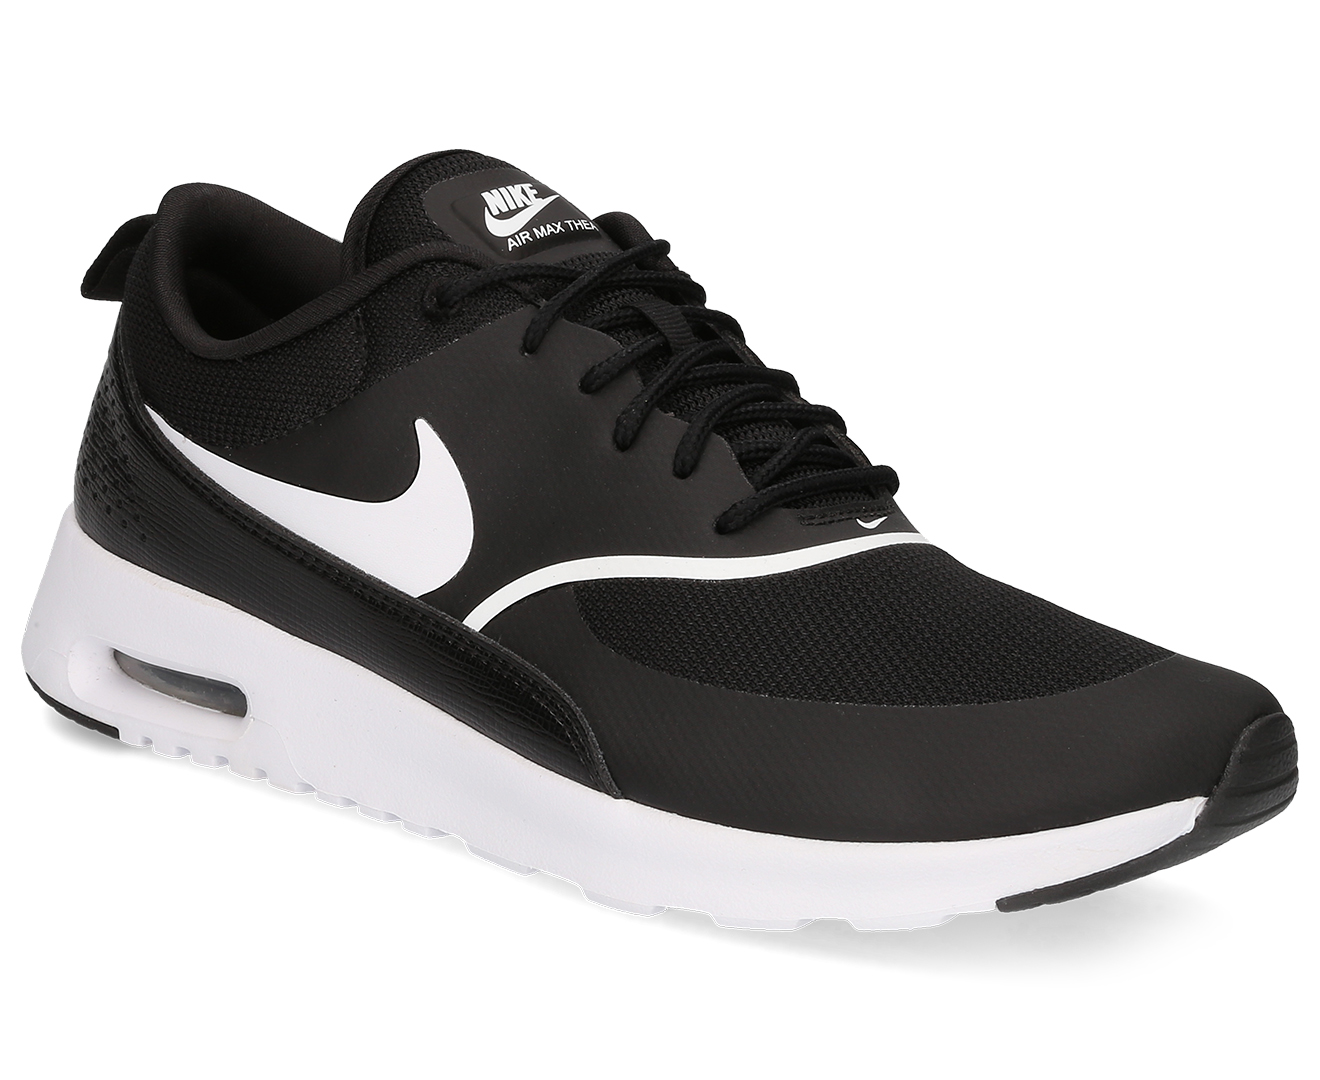 Details about 599409 028 Nike Air Max Thea Women's Casual Shoes BlackWhite